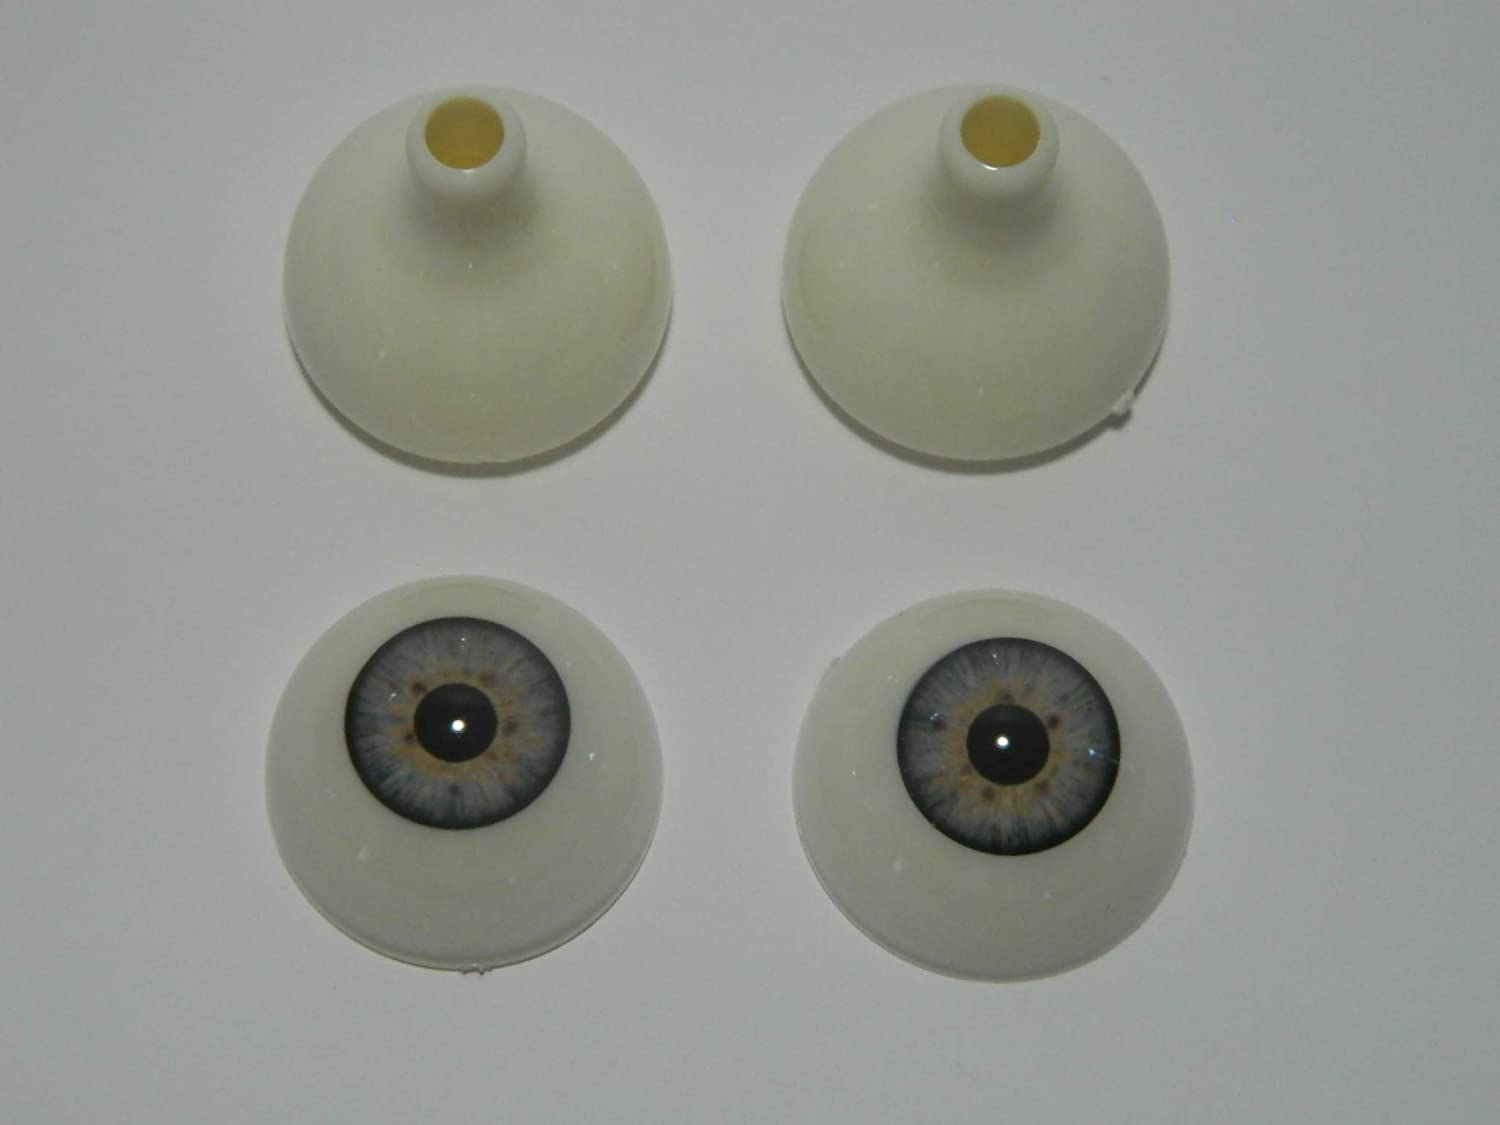 DOLLS or Bears FL02 MASKS Pair of Realistic Life Size Acrylic Half Round Hollow Back Eyes for Halloween PROPS